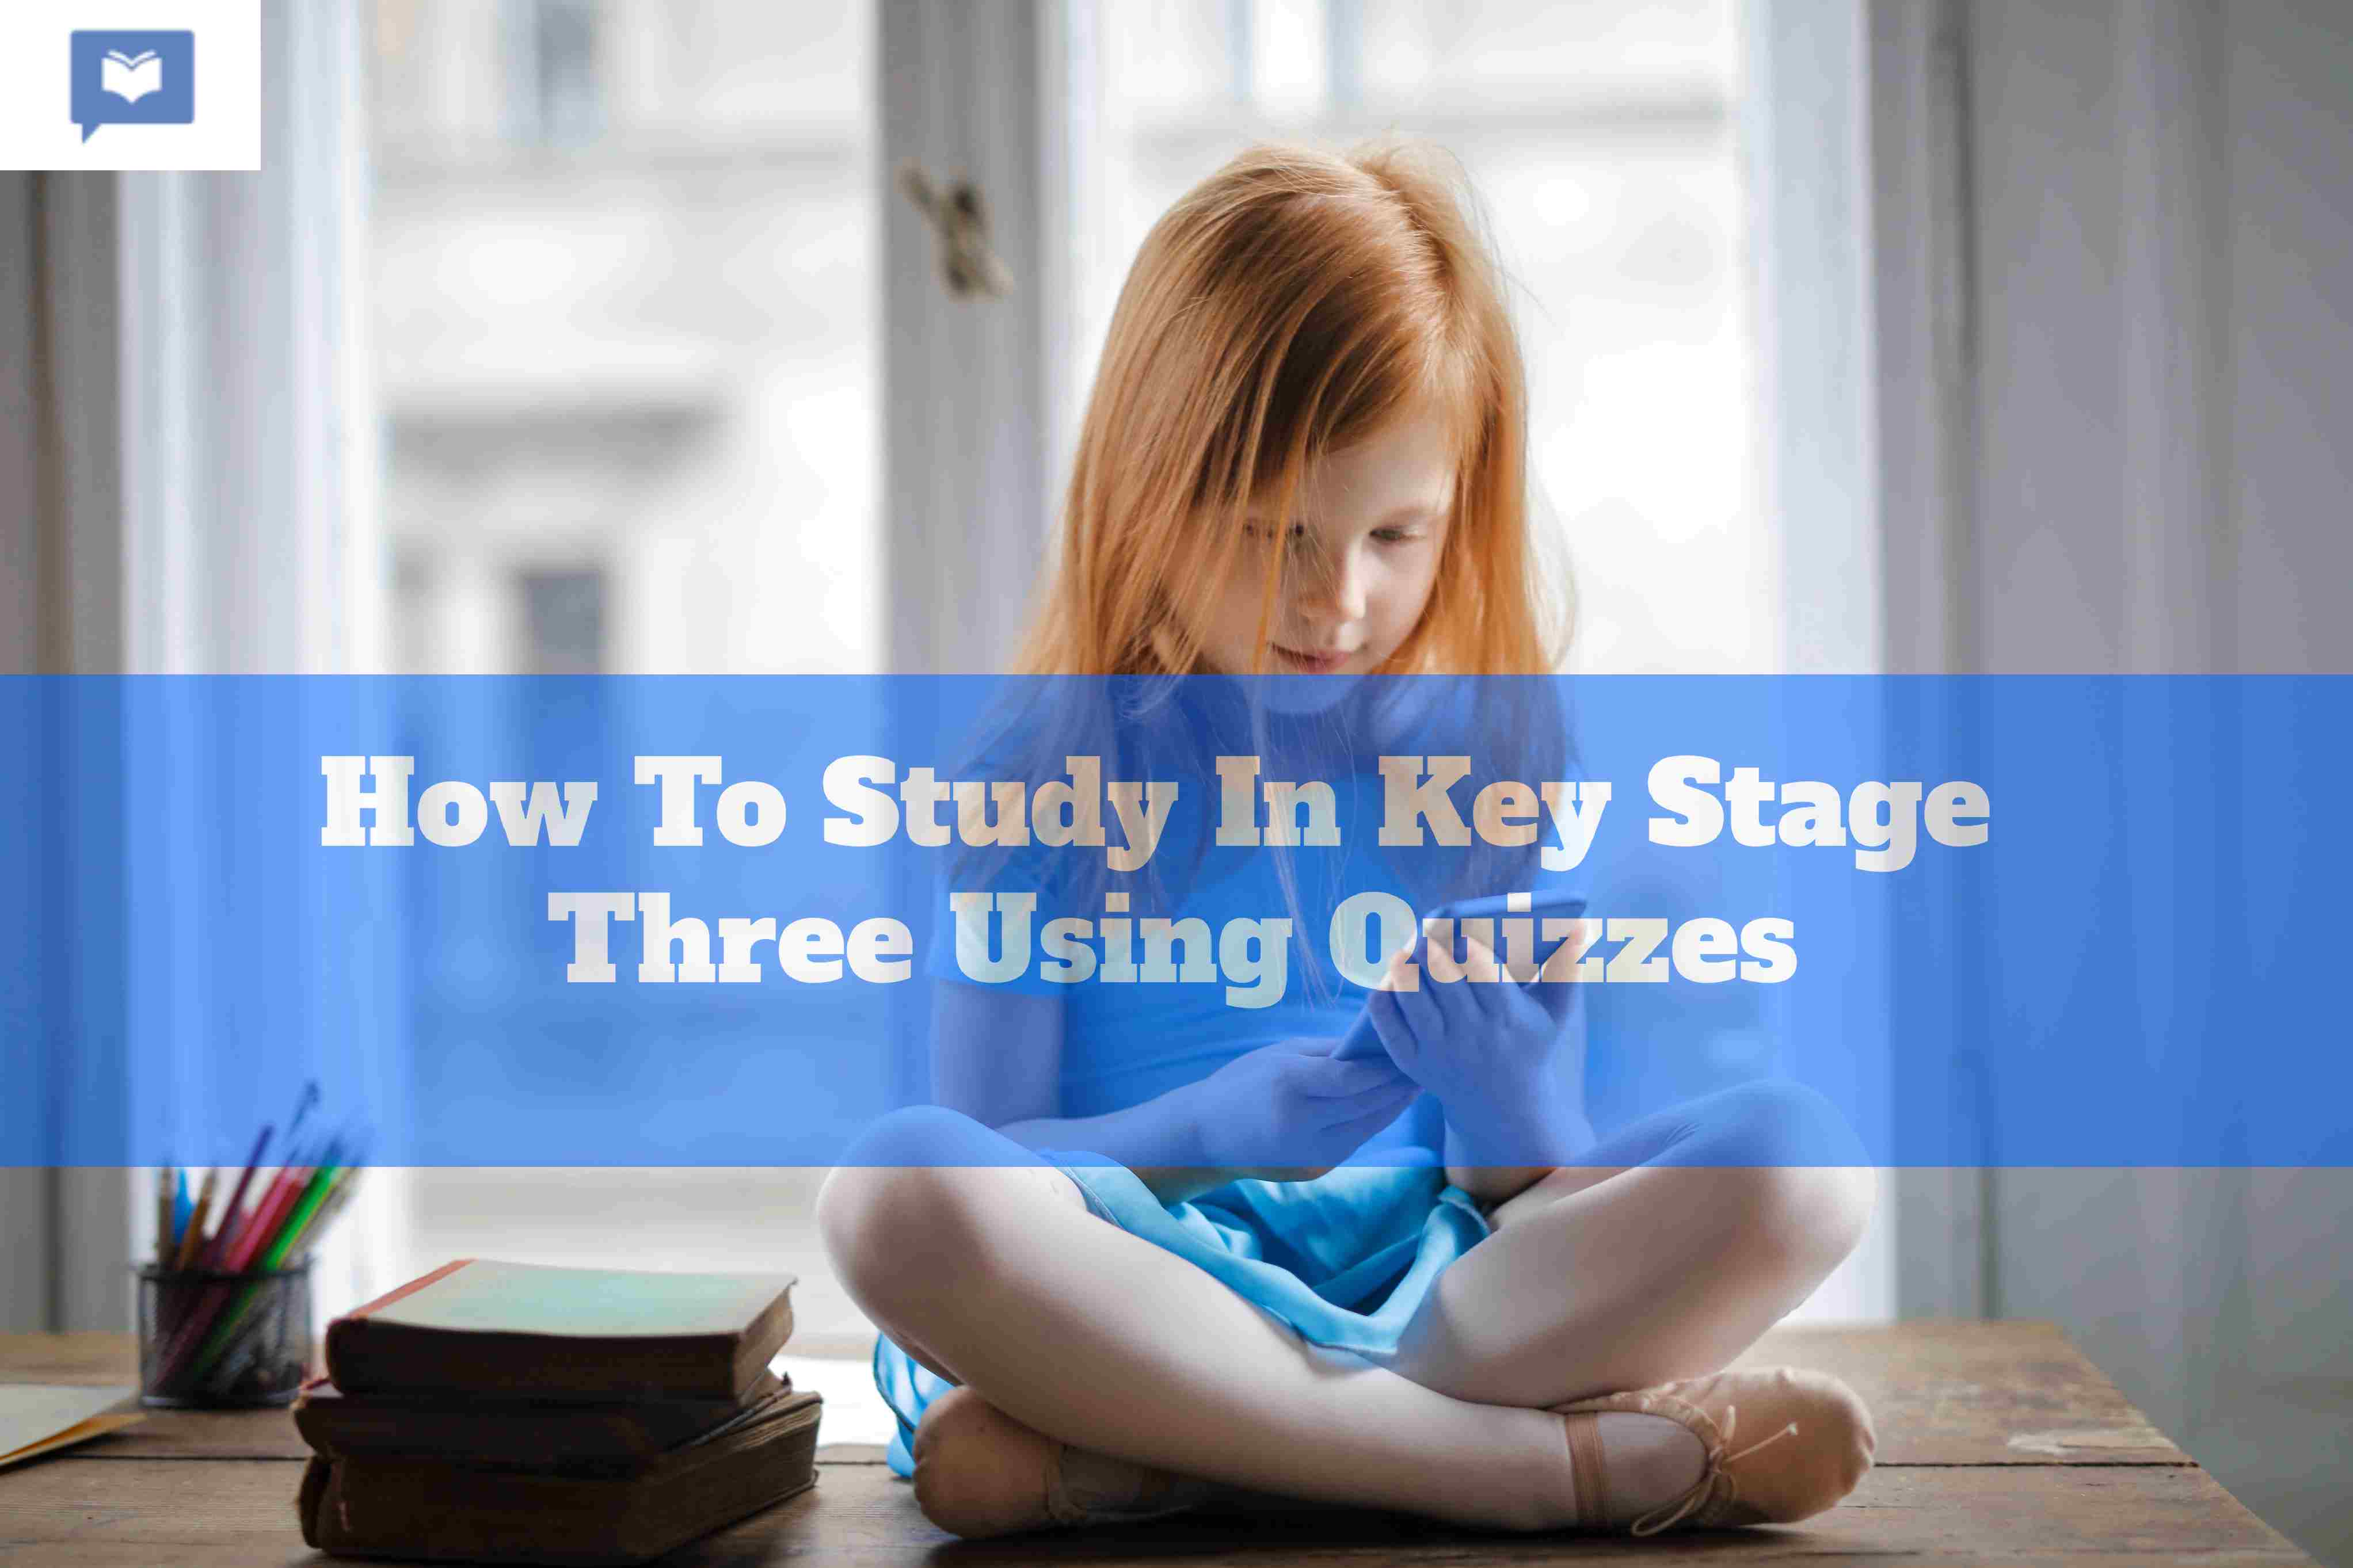 How To Study In Key Stage Three Using Quizzes